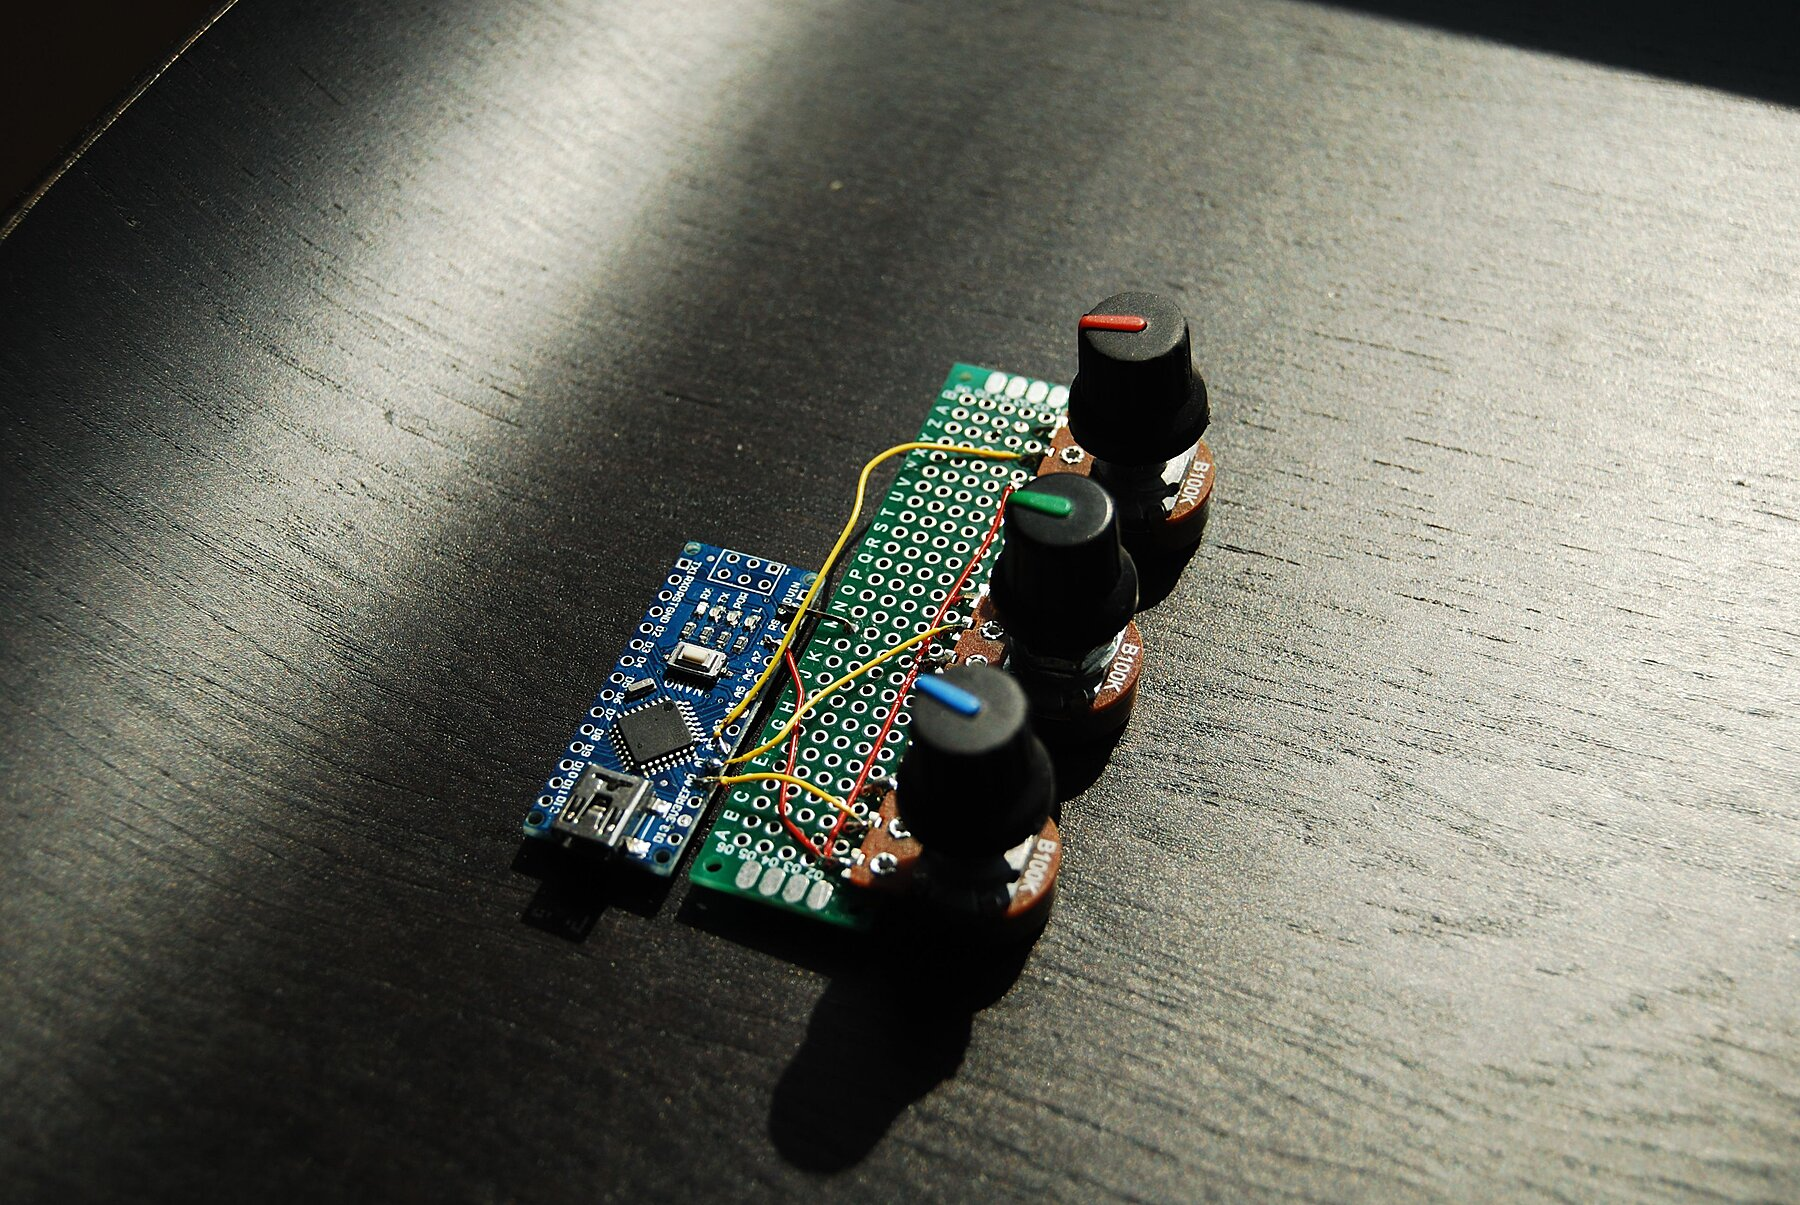 Quick and creative soldering...